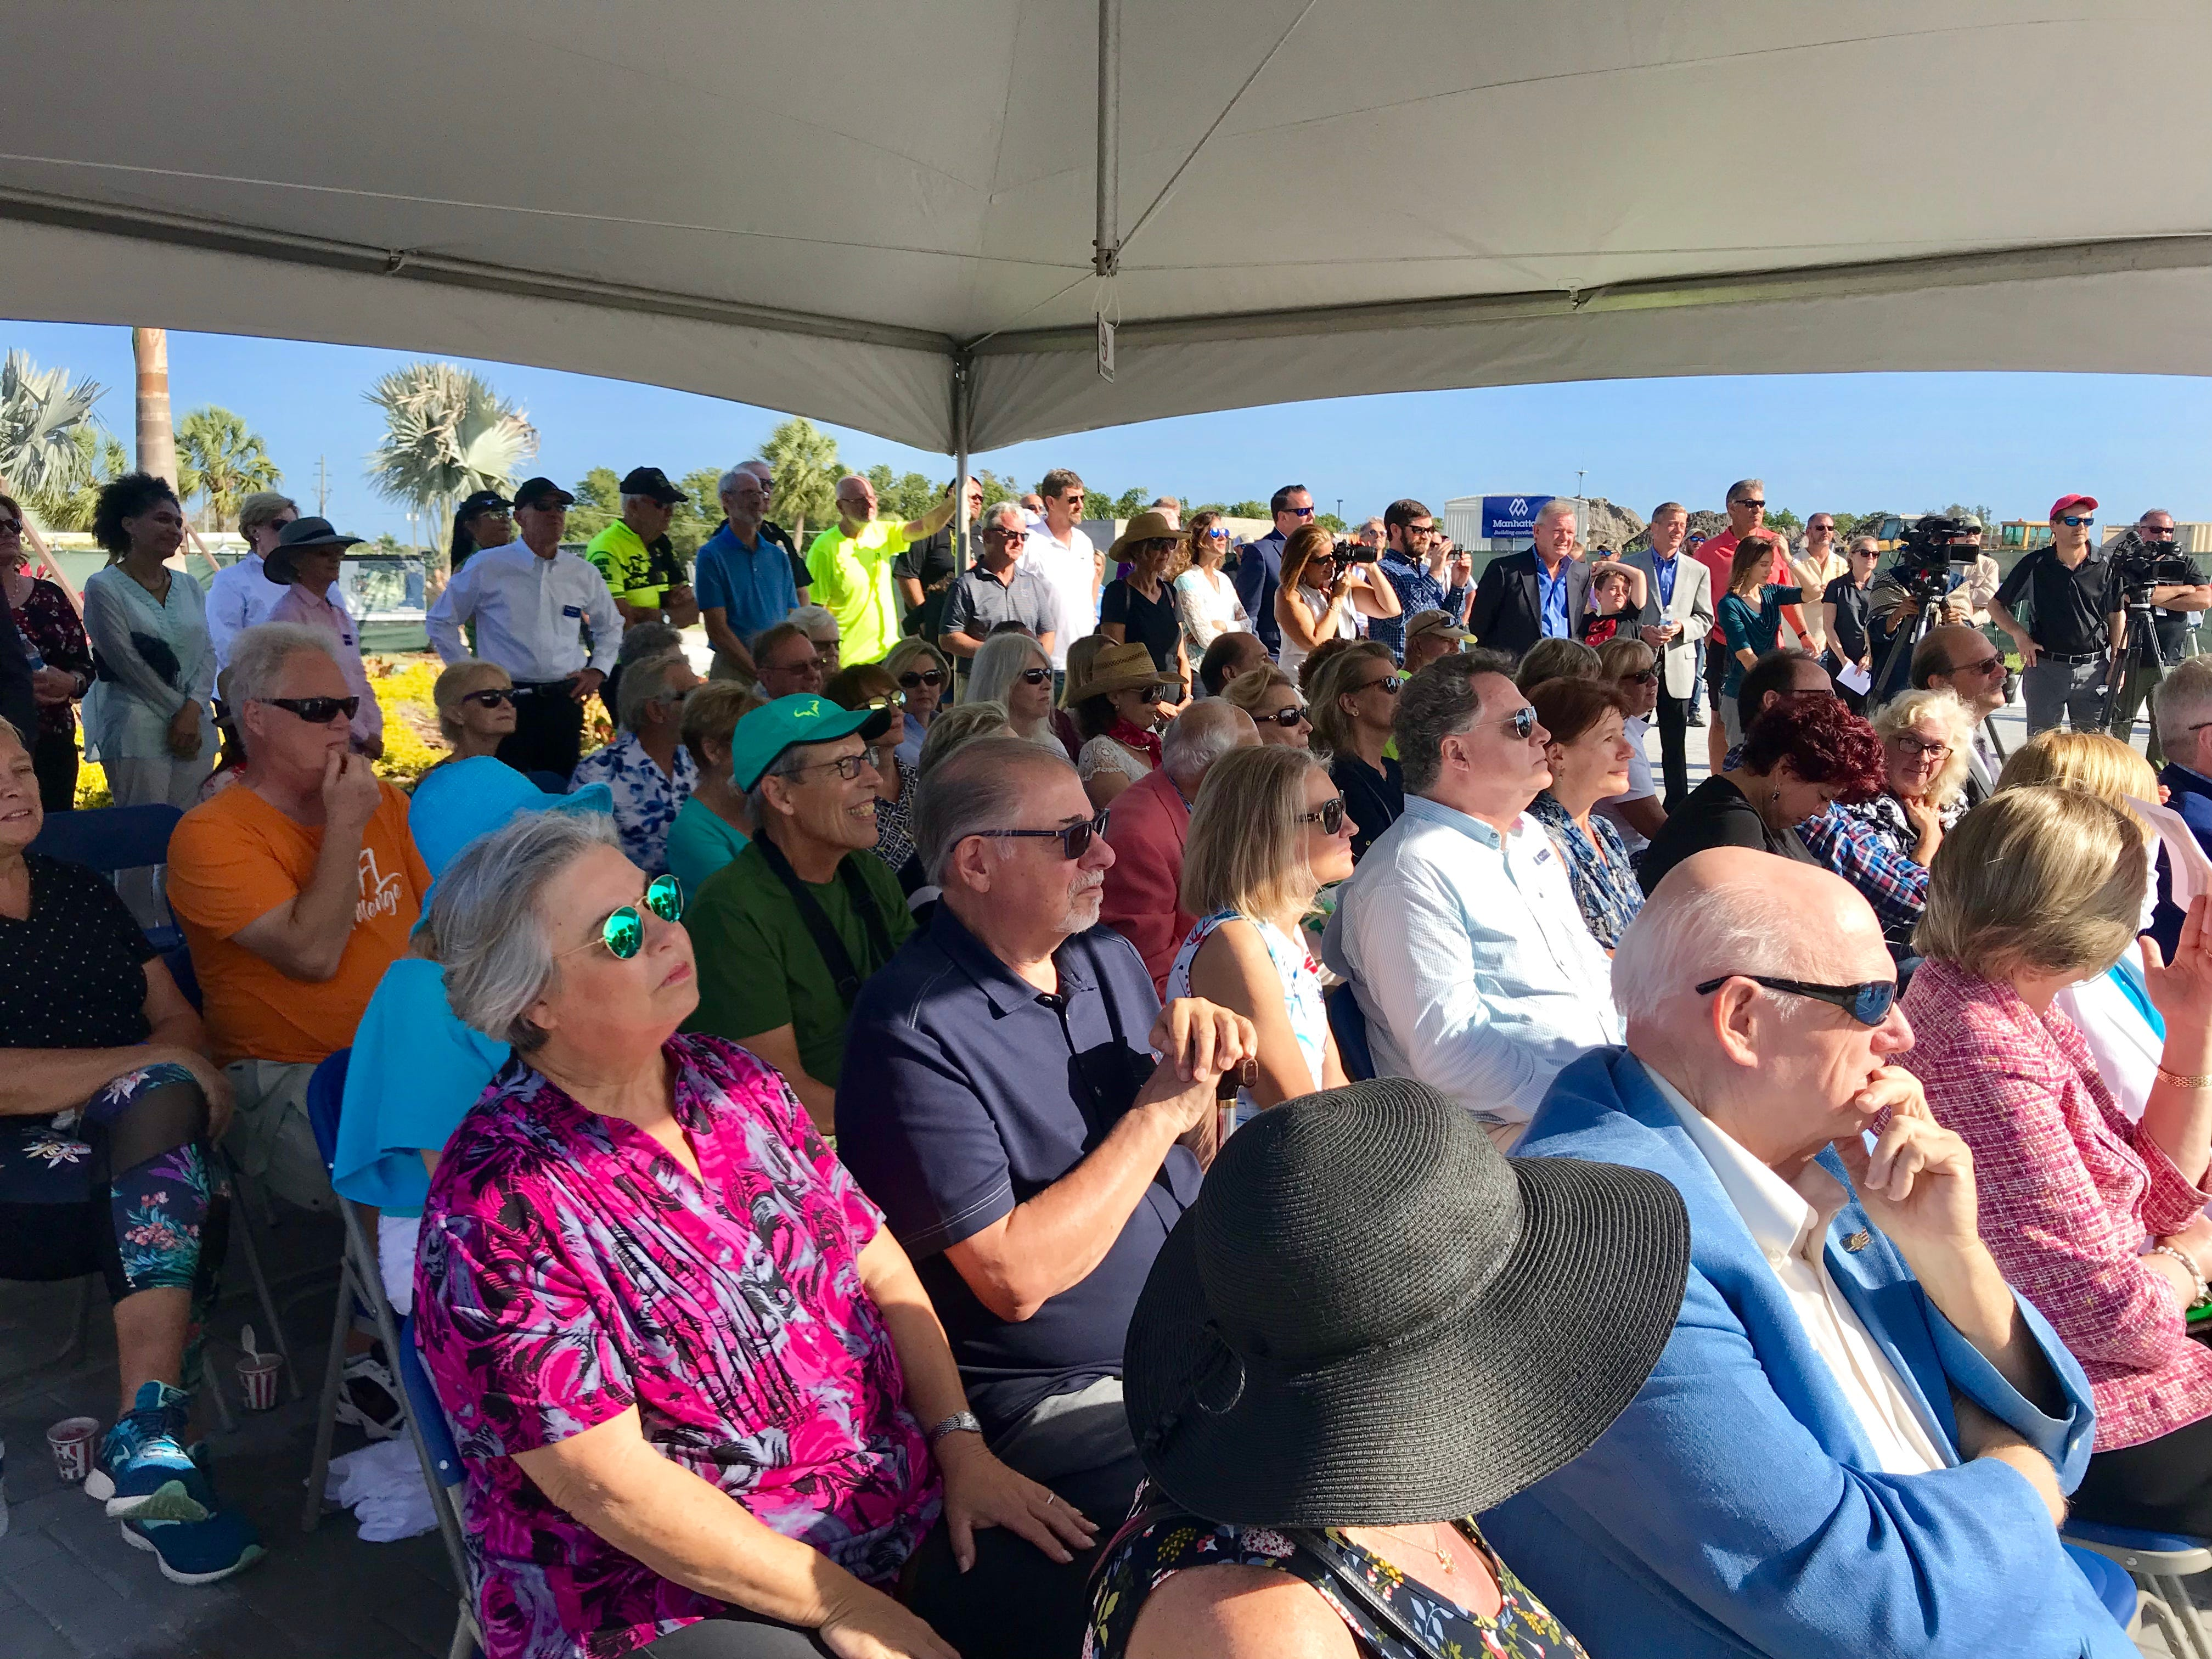 Community members attend the Baker Park dedication ceremony on Thursday, March 14, 2019. The first portion of Baker Park opened on March 14. The rest of the park is set to open in October.